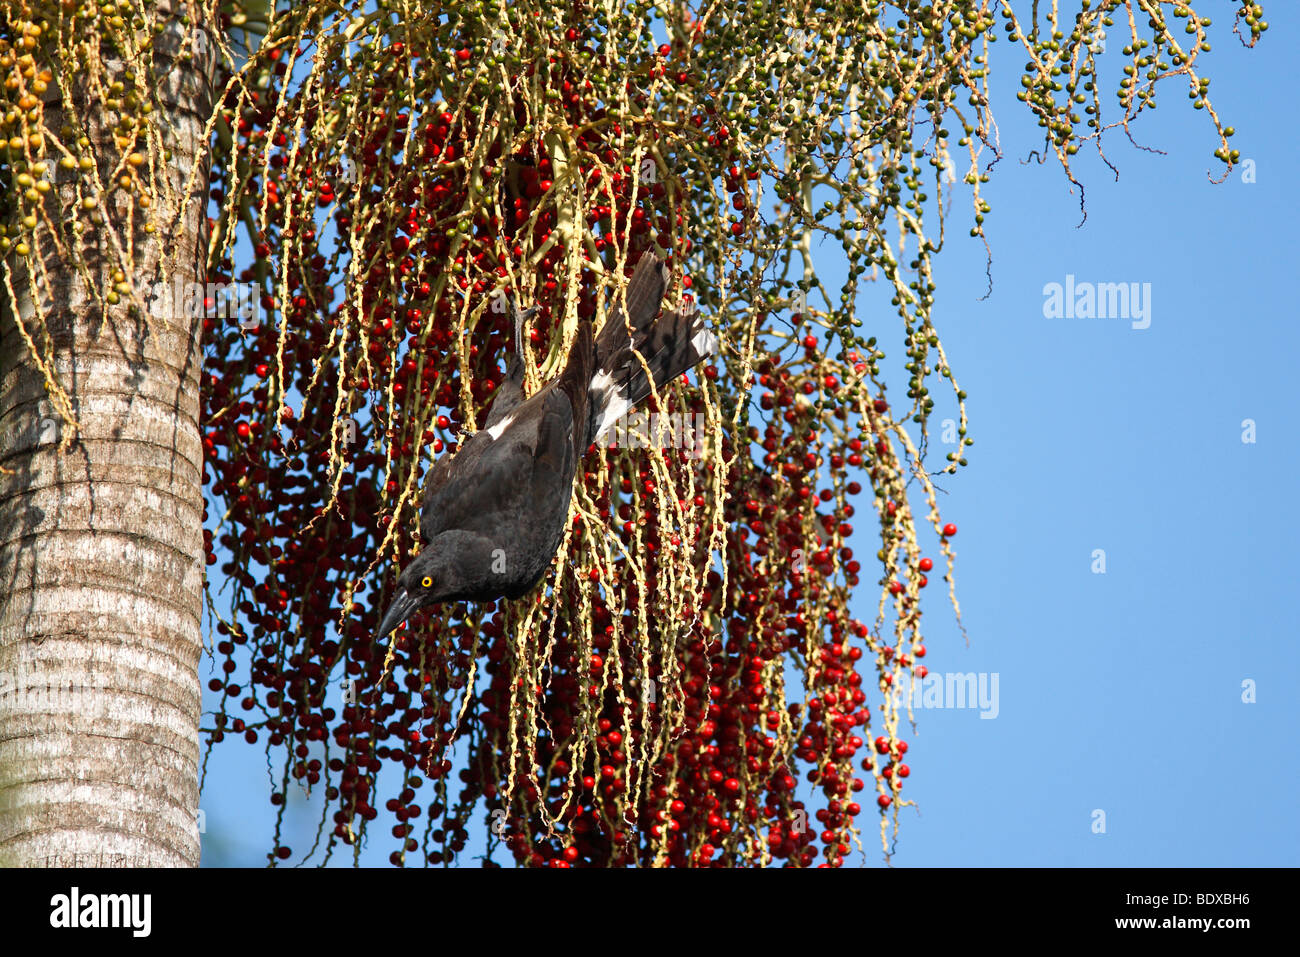 Pied currawong, Strepera graculina, eating the fruit of the Alexandra Palm - Stock Image